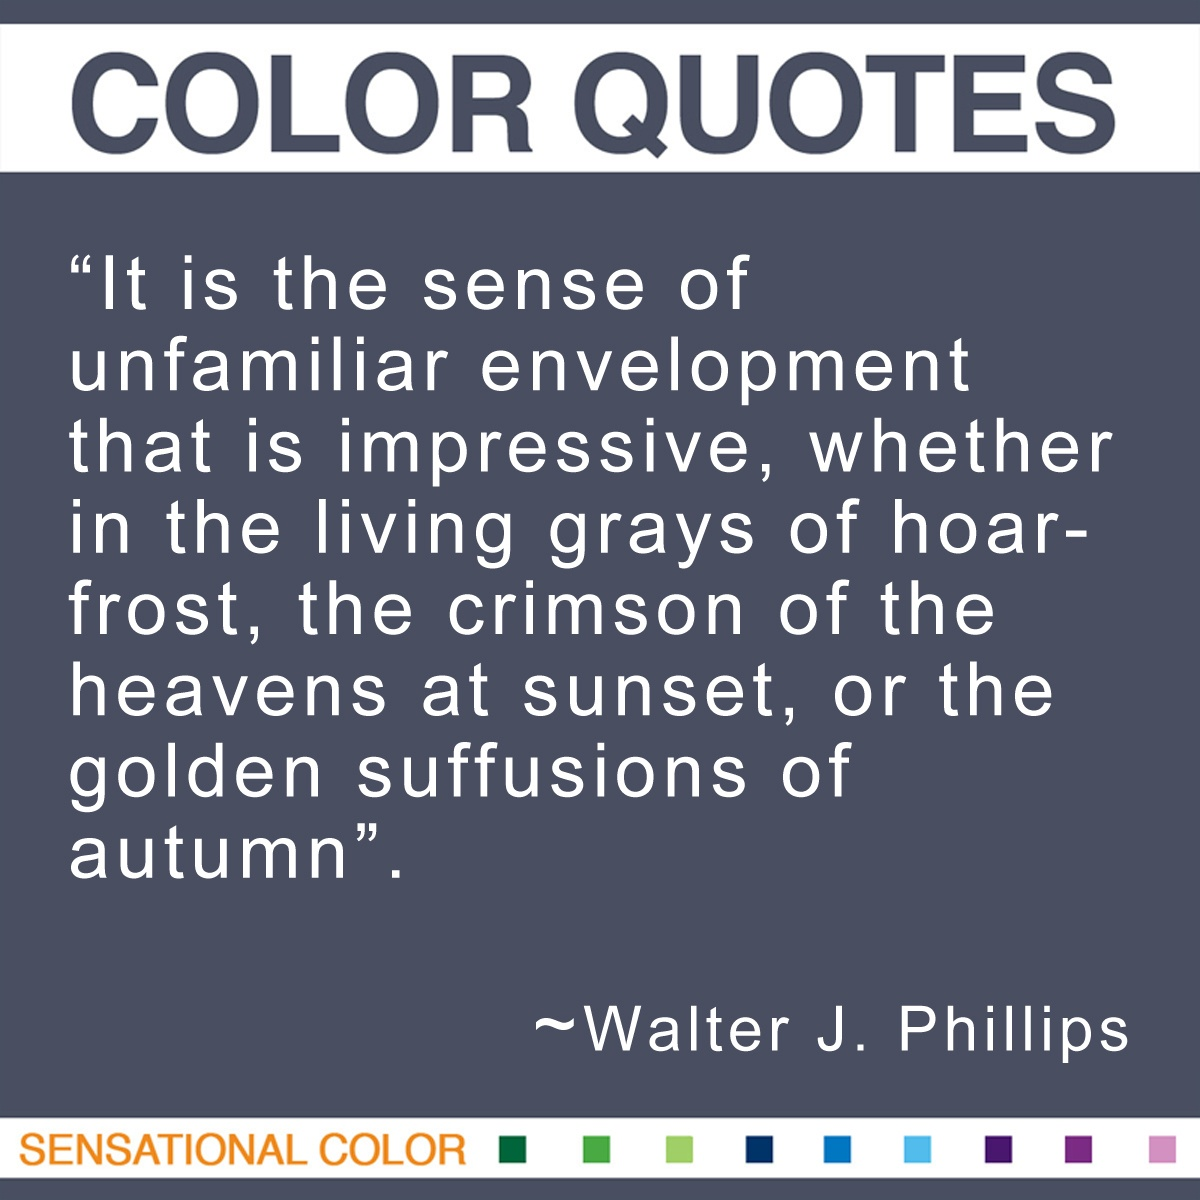 """It is the sense of unfamiliar envelopment that is impressive, whether in the living grays of hoarfrost, the crimson of the heavens at sunset, or the golden suffusions of autumn"" - Walter J. Phillips"